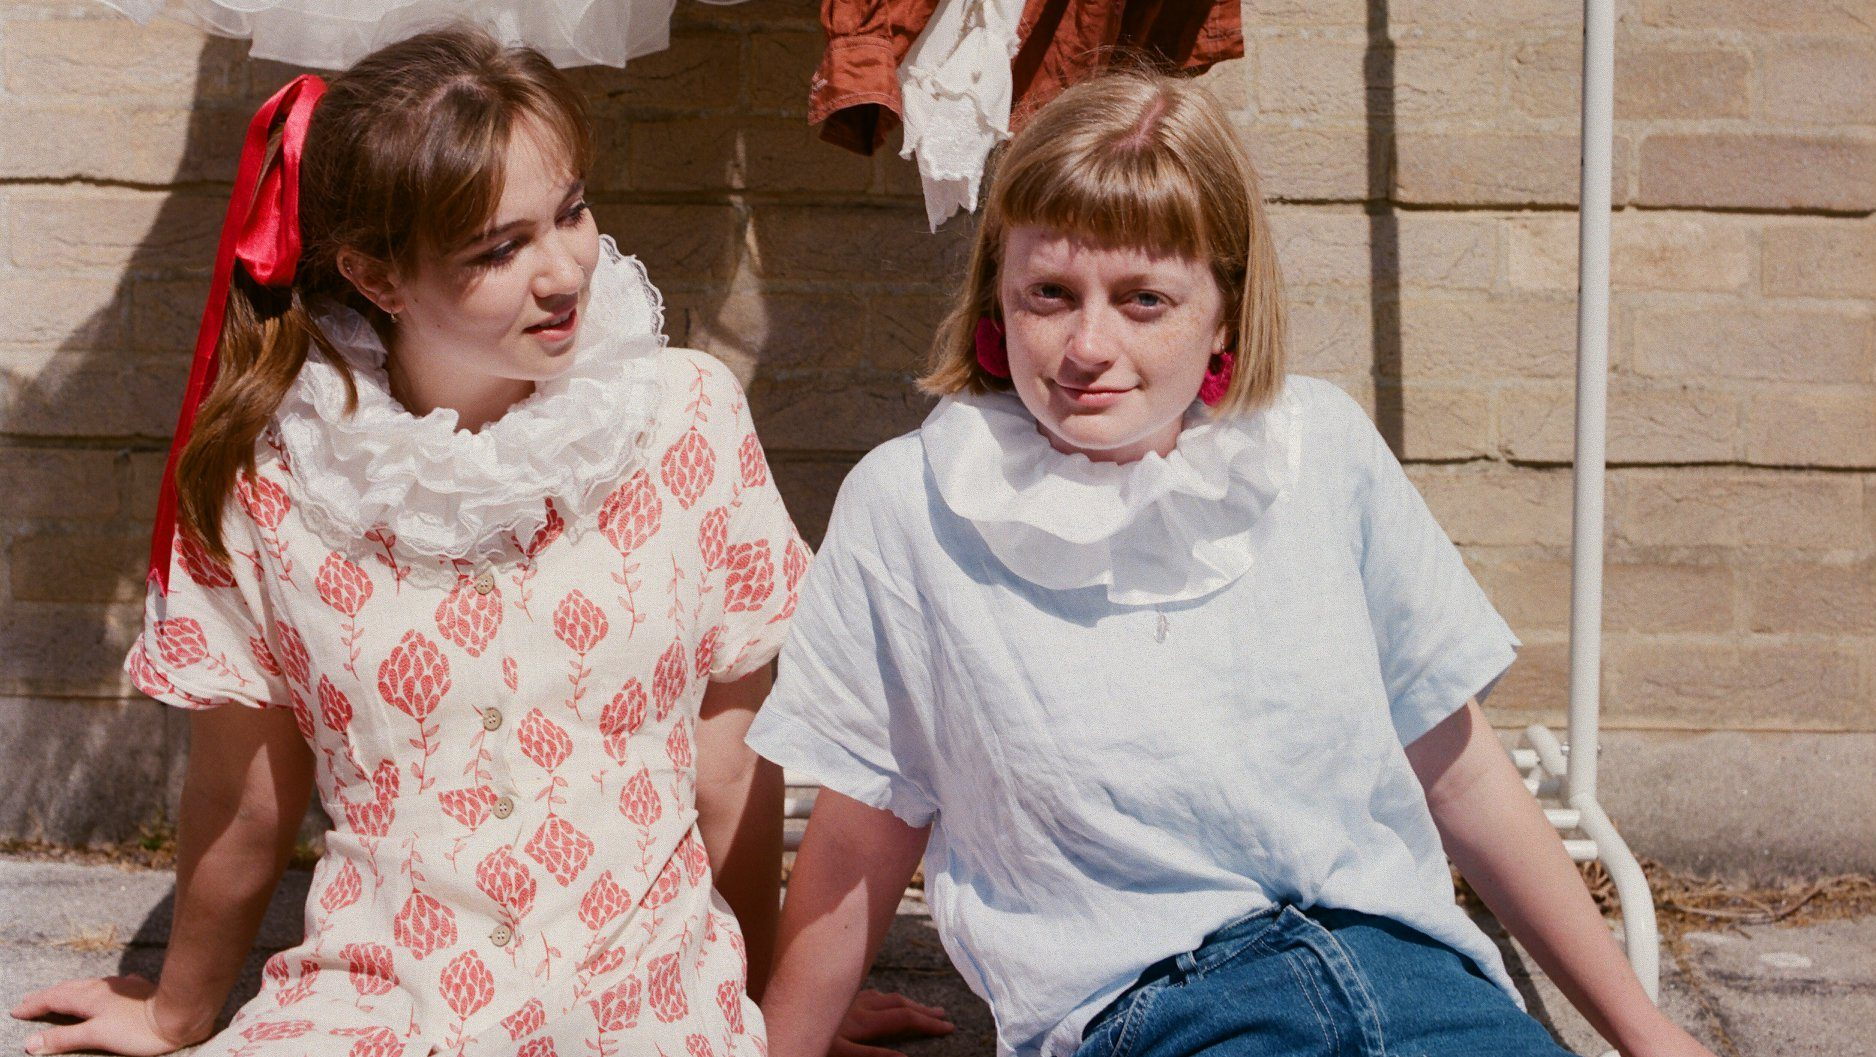 Two girls sit in front of a clothes rail, with white ruffles round their necks, one of them looking at the other